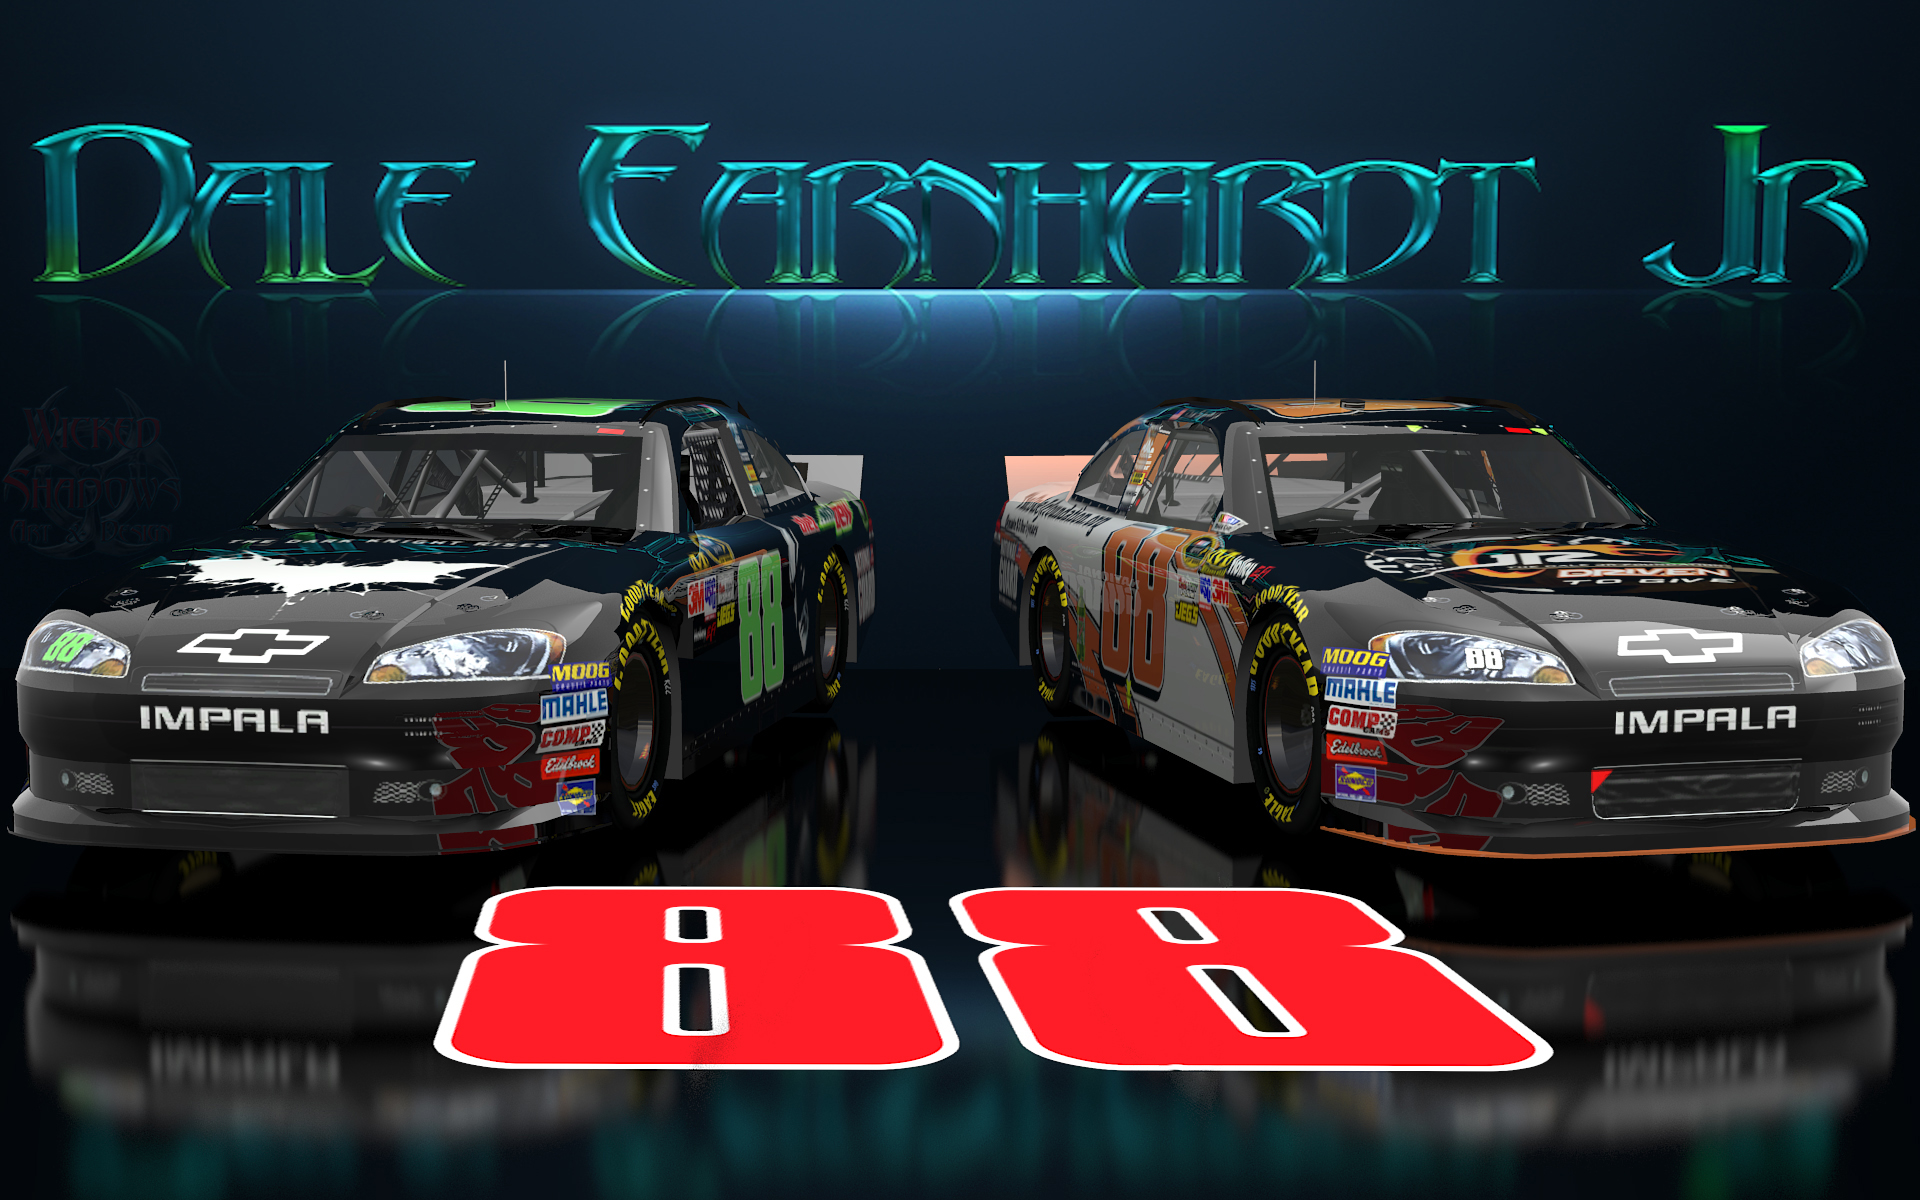 Download free dale earnhardt jr wallpapers for your mobile phone